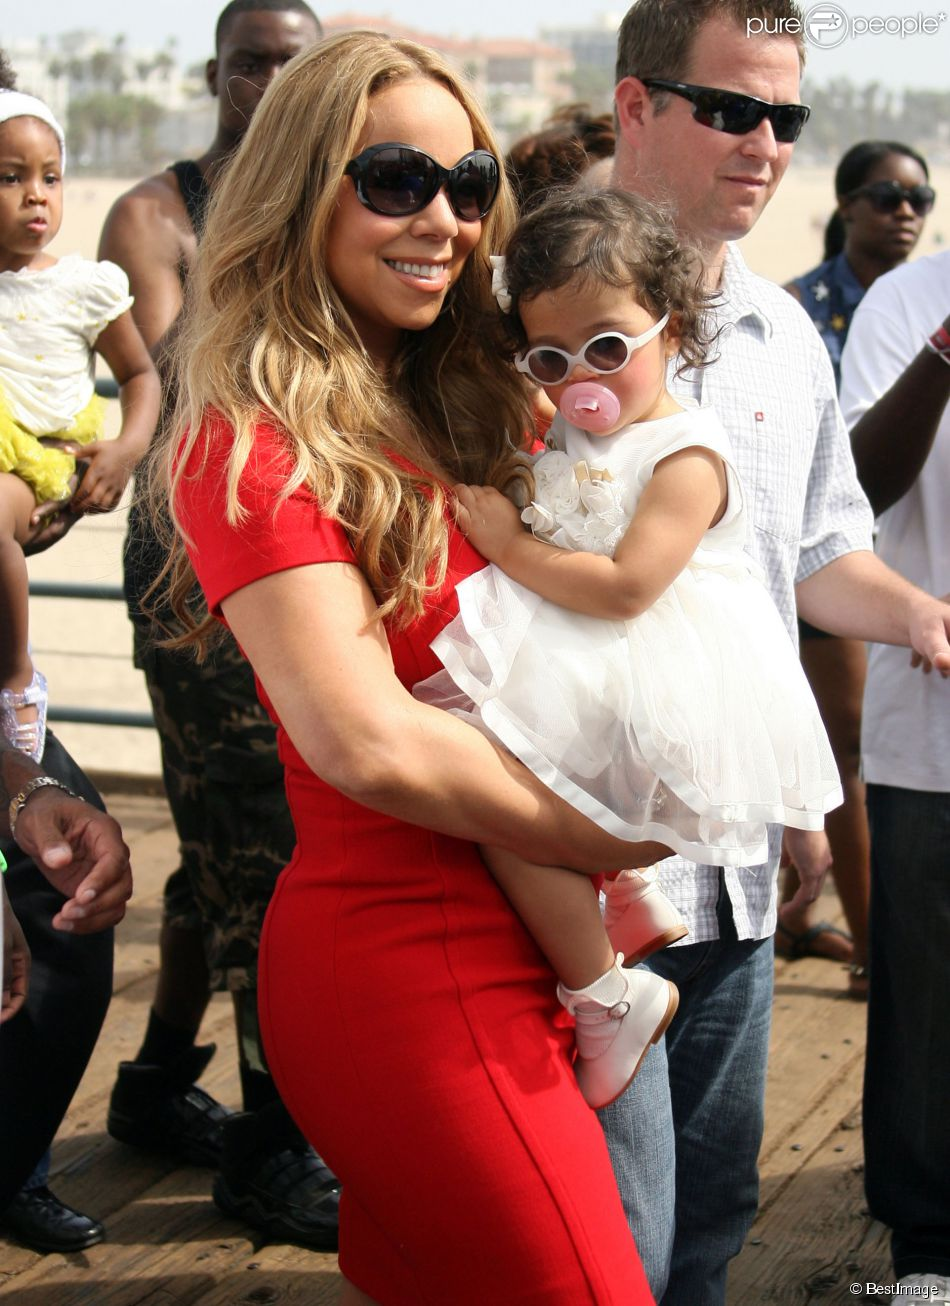 mount carey divorced singles When it comes to her ongoing divorce from nick cannon, mariah carey only but i never thought i would have babies with someone and then get divorced.